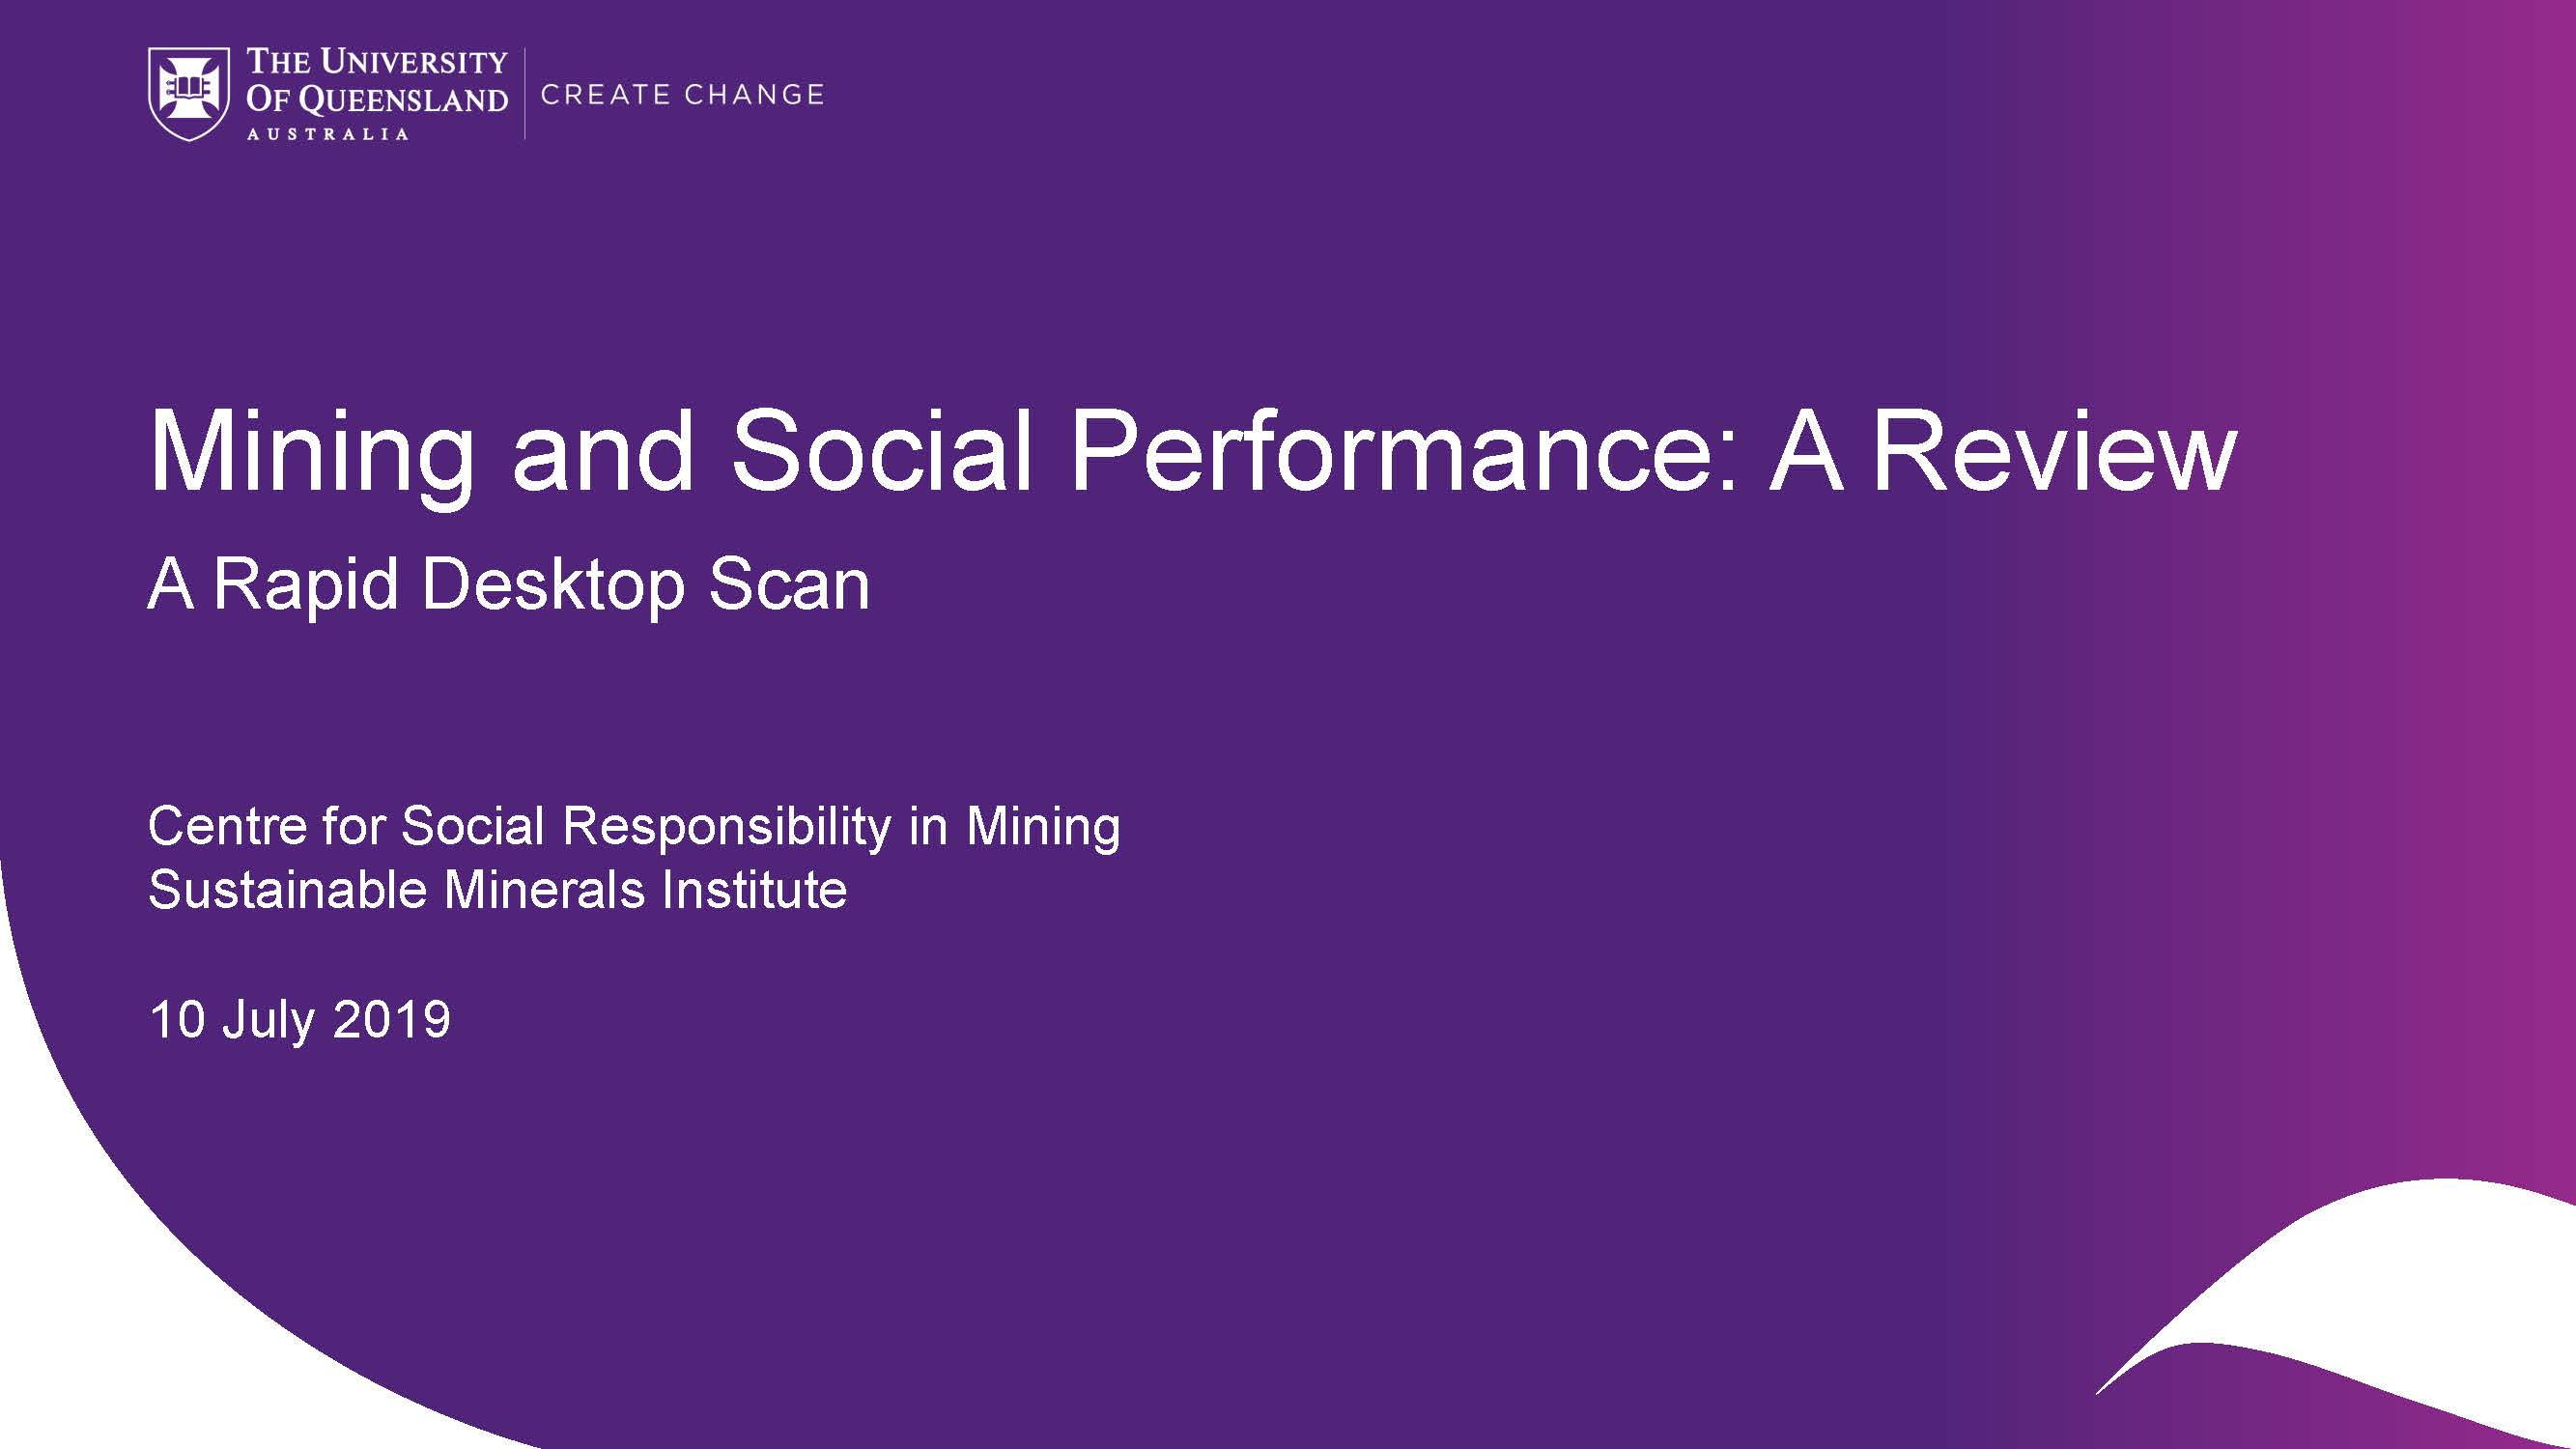 A Rapid Desktop Scan of Social Performance of 14 extractive companies